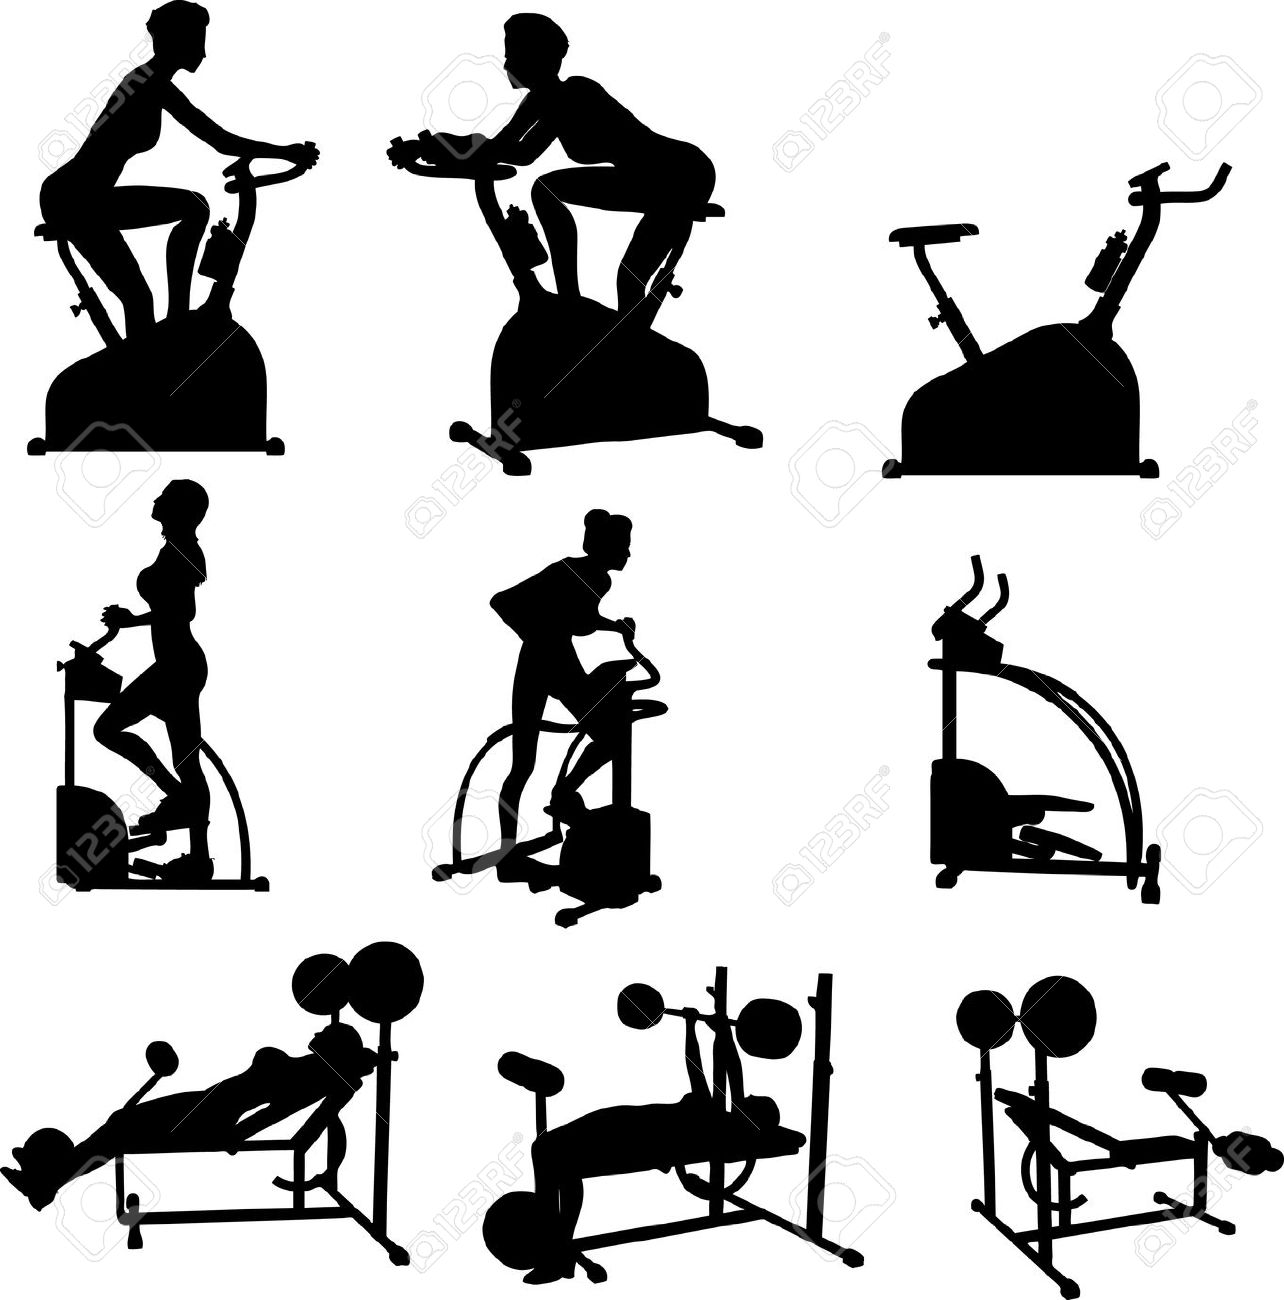 1284x1300 4454911 Female Excercise Silhouettes Gym Exercise Fitness